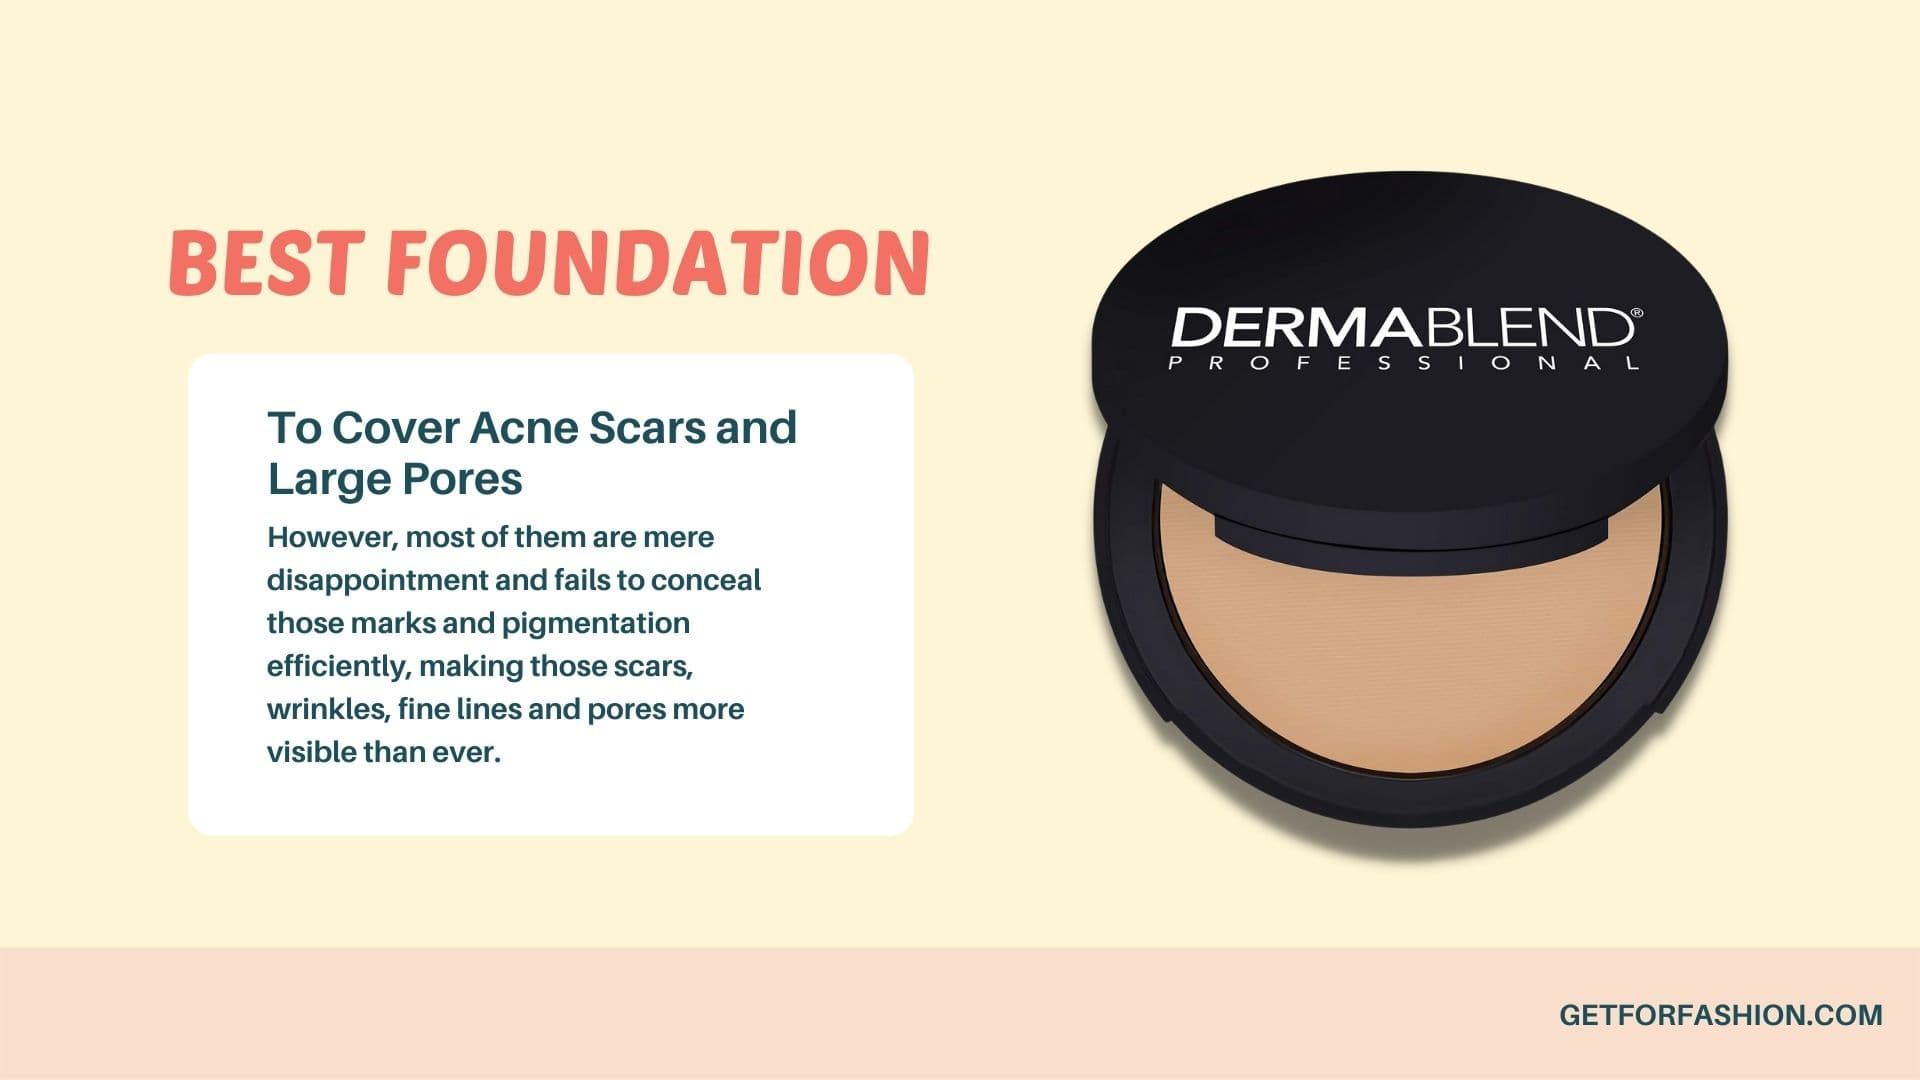 best foundation to cover acne scars and large pores